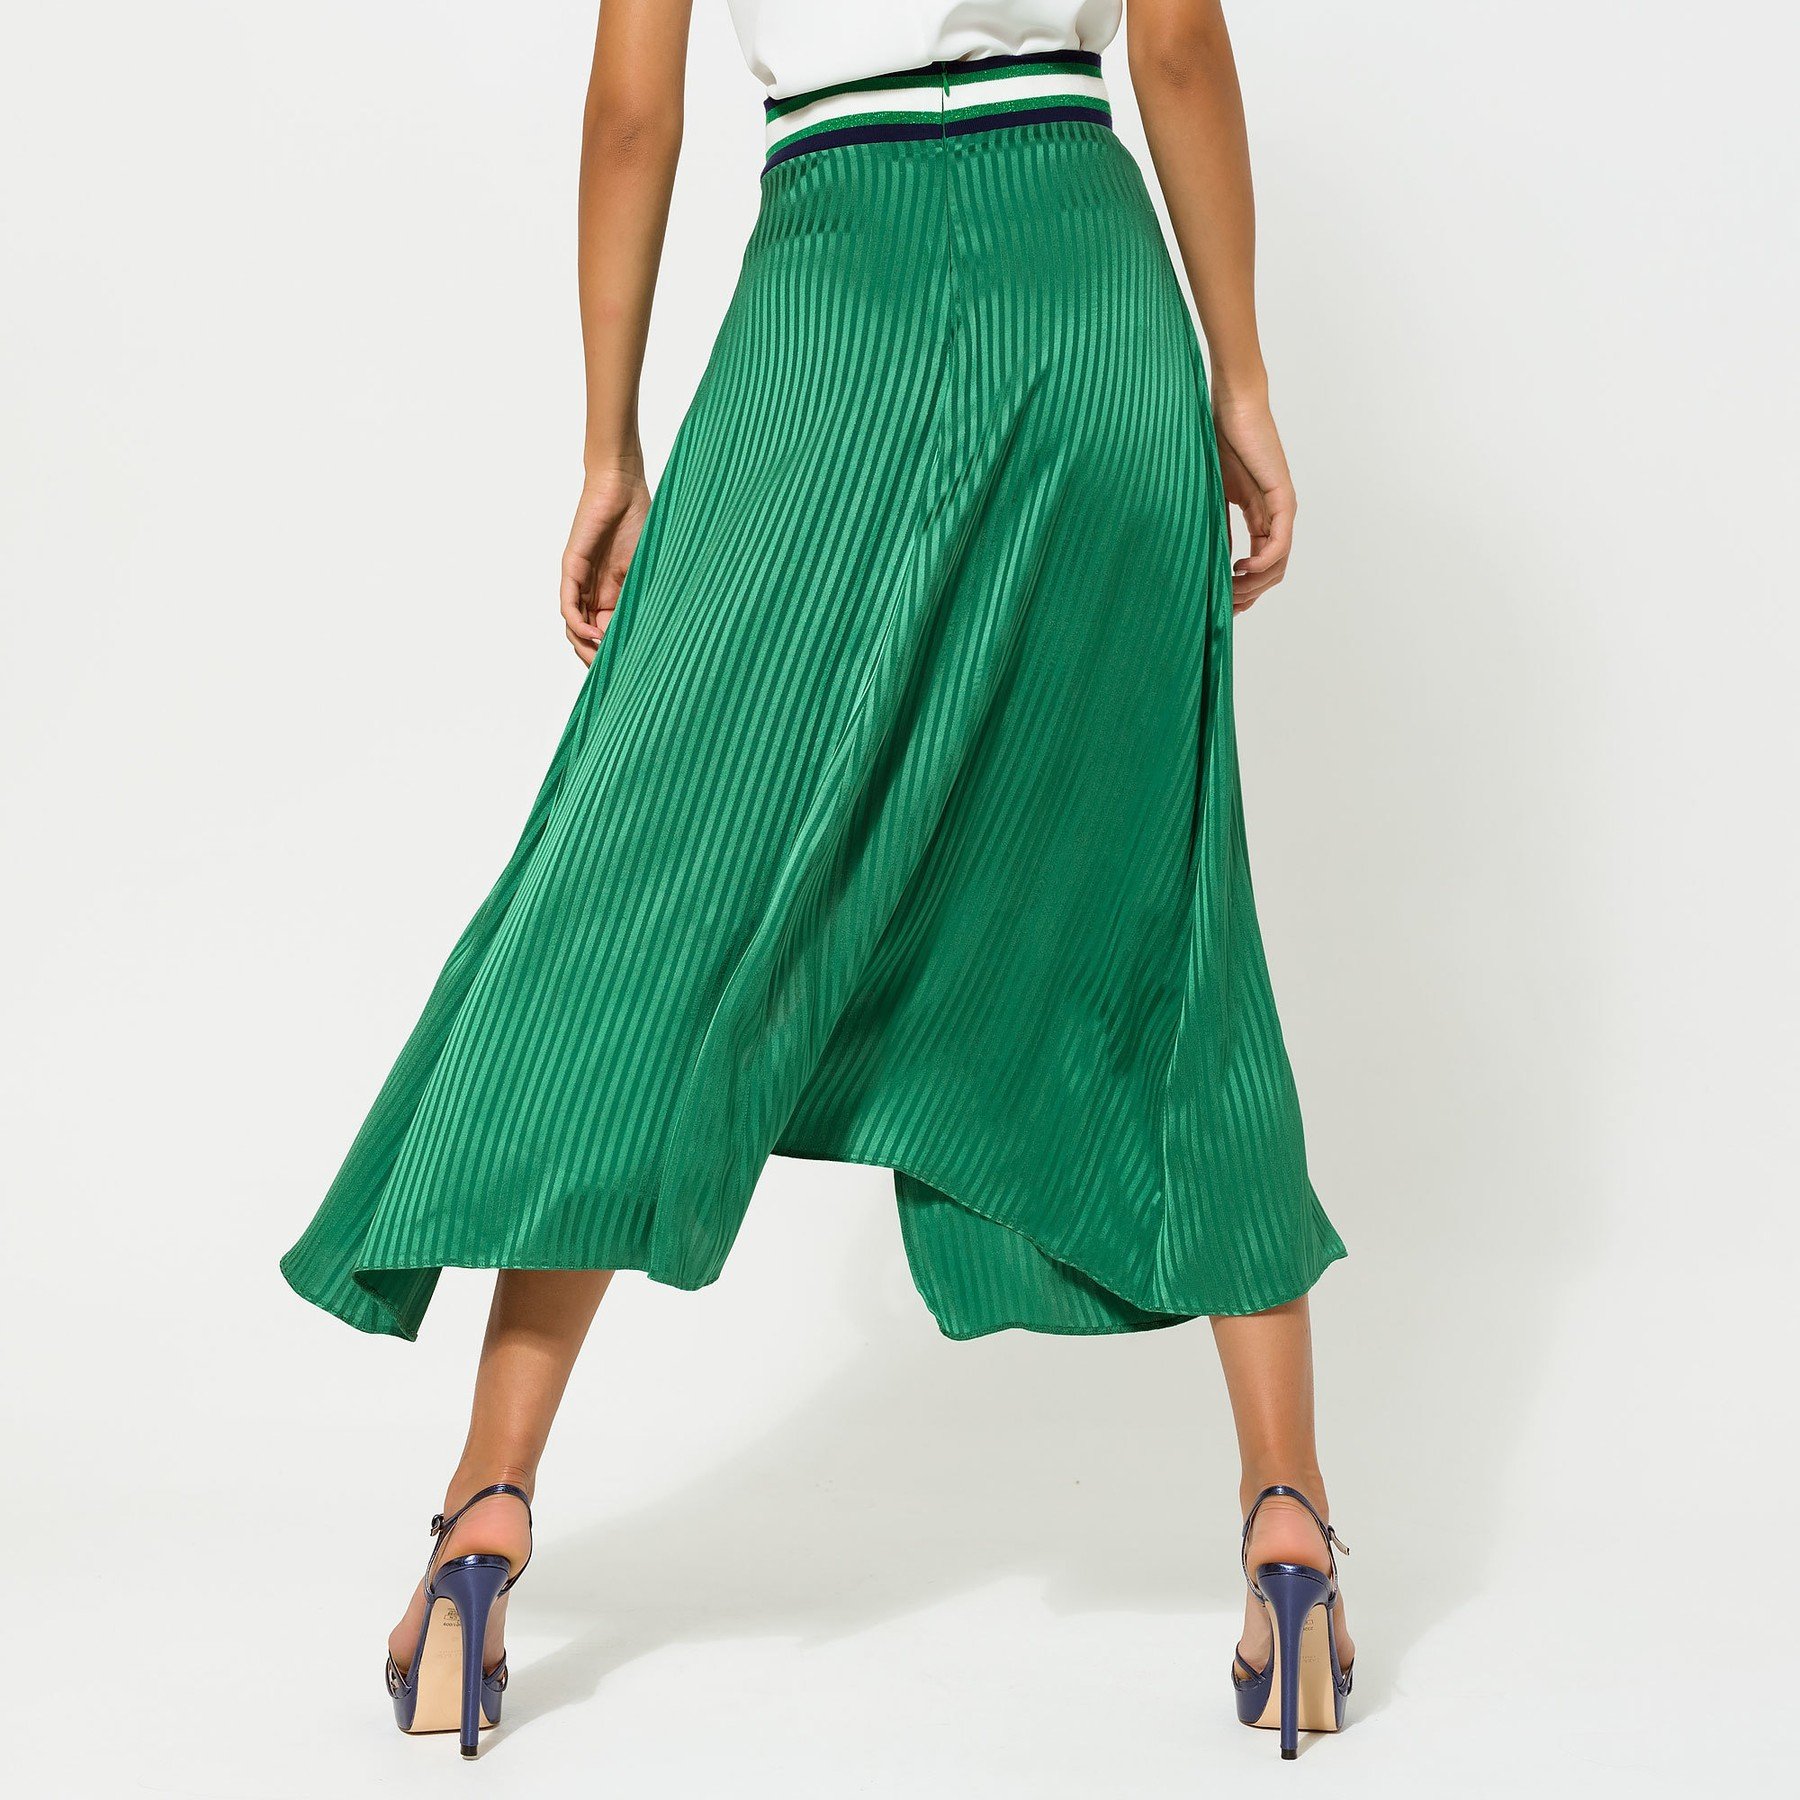 Green Wrap effect Skirt with Elastic Waistband